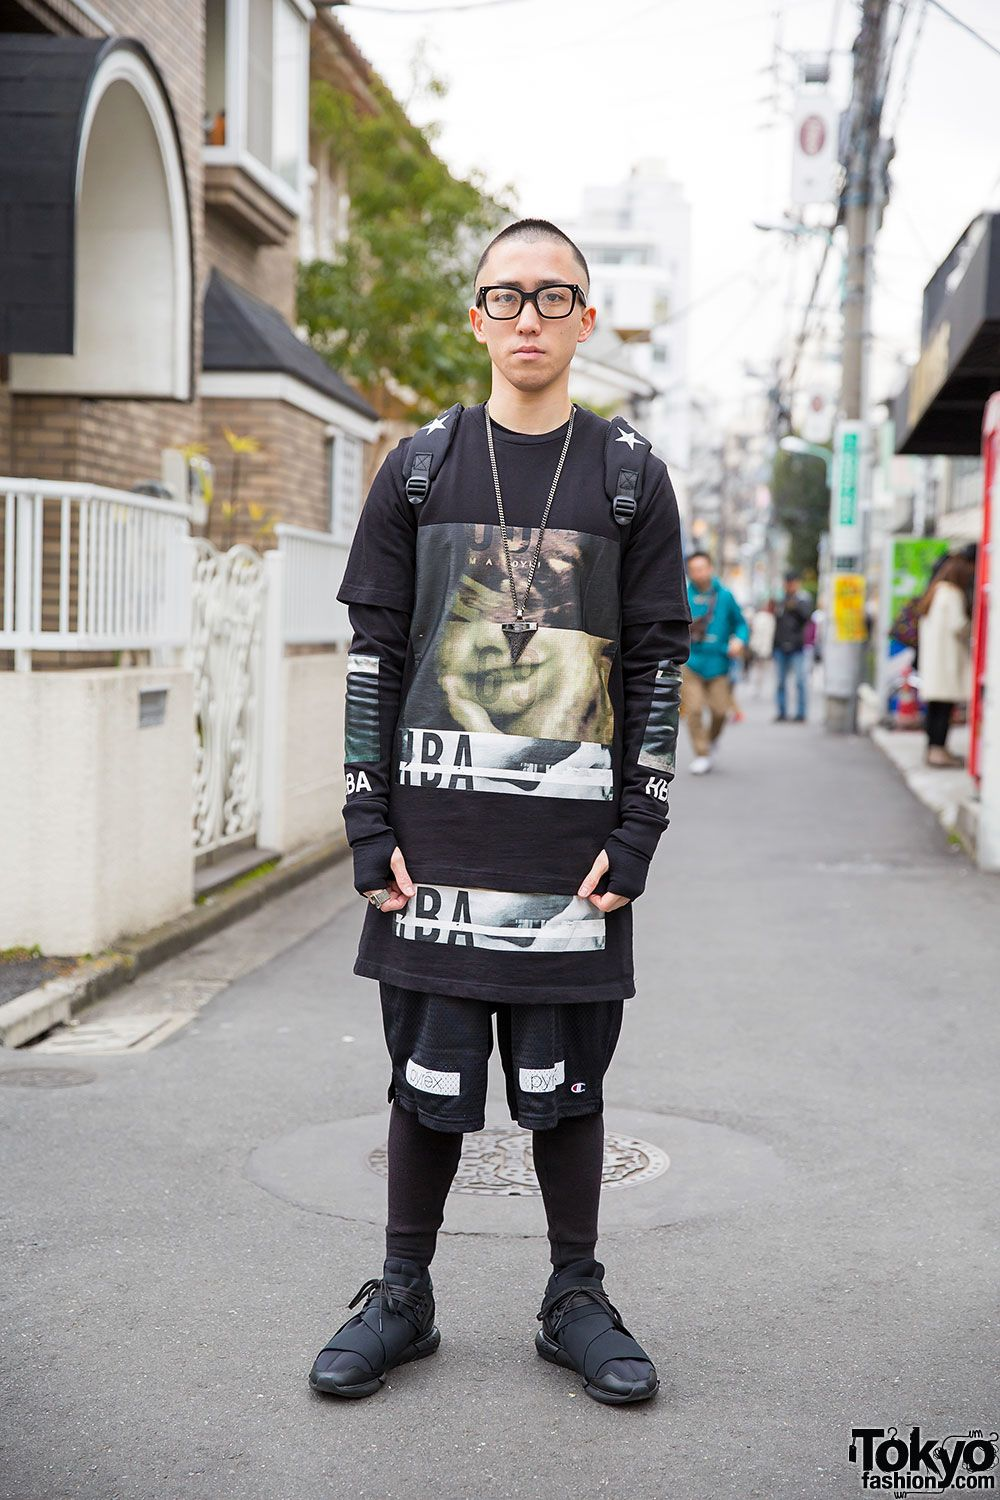 """streetwear style"" like a mix of urban / punk / skater"